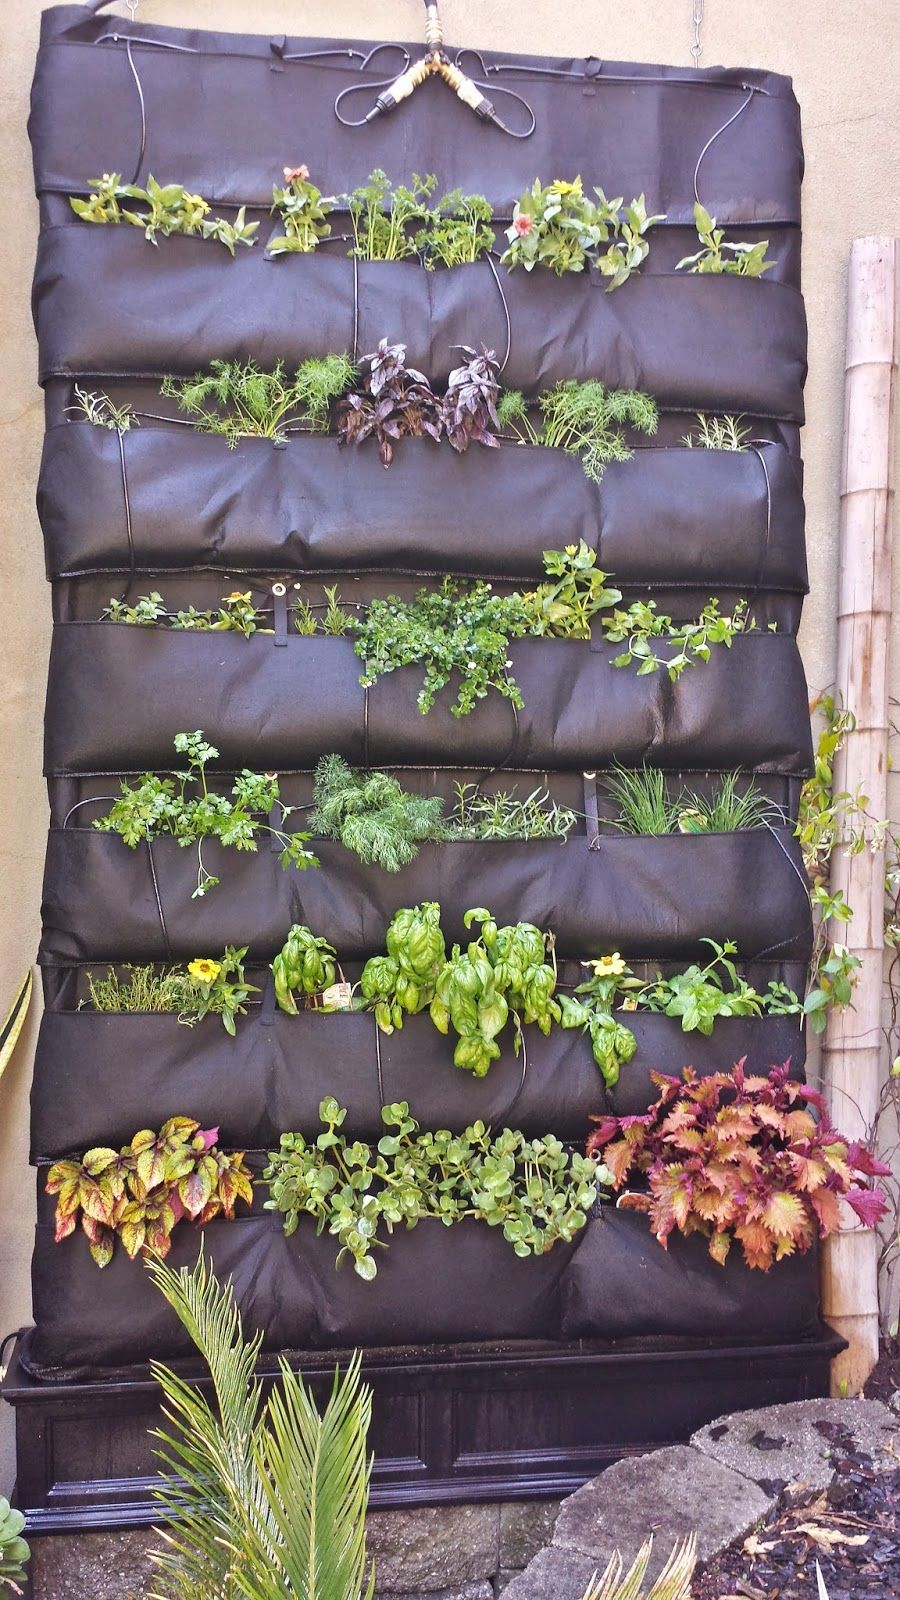 Diy Hydroponic System Grows Herbs On The Wall 400 x 300